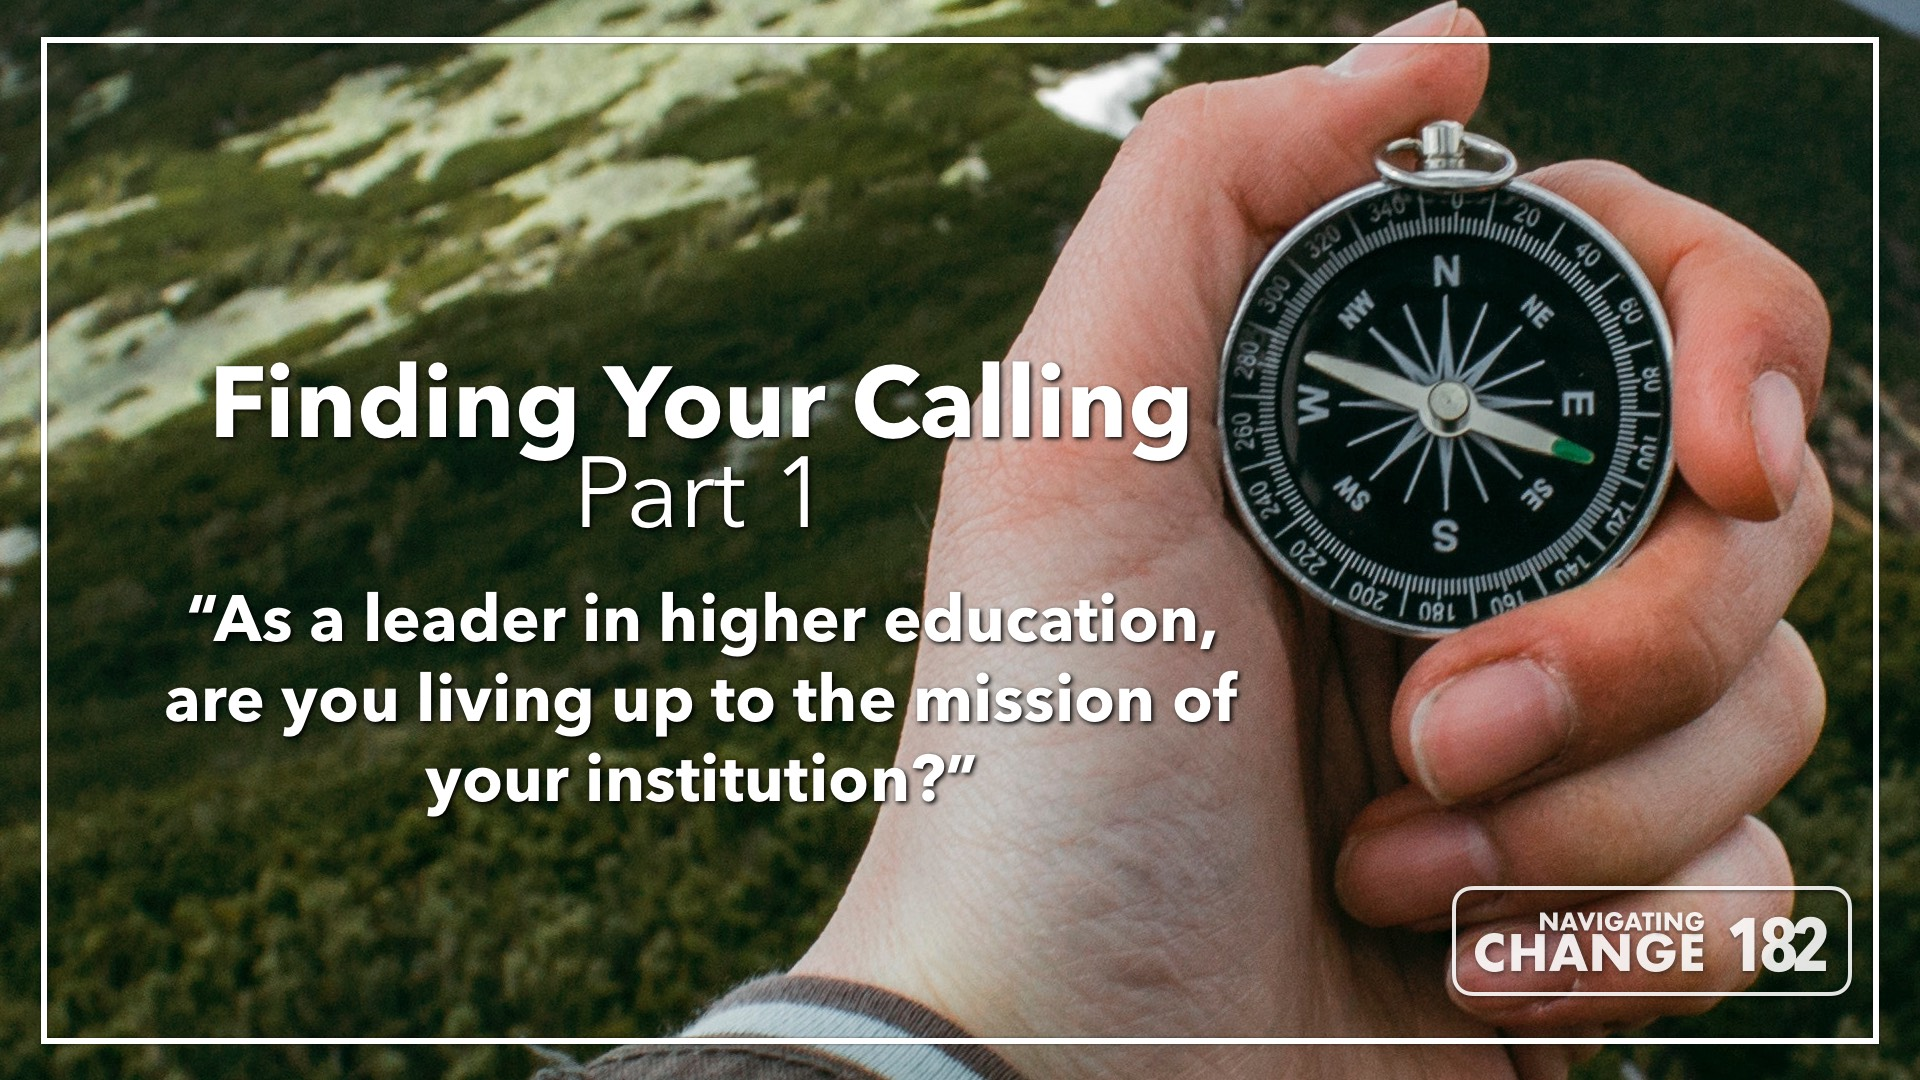 Listen to Finding Your Calling Part 1 on The Navigating Change Podcast